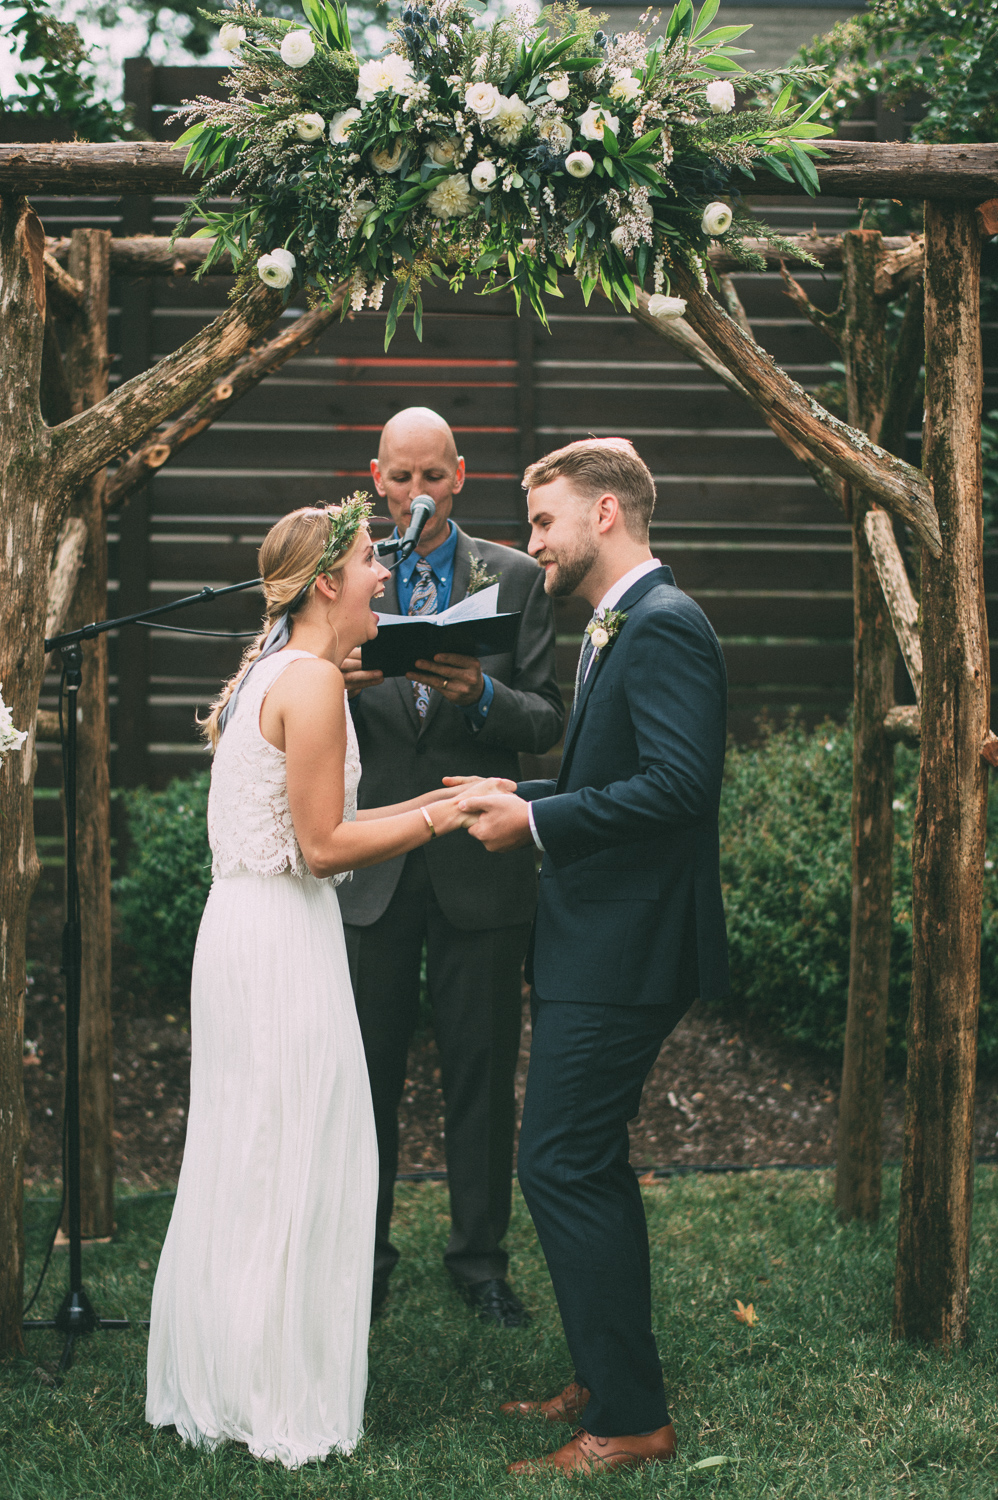 CordelleWedding_NashvilleWeddingPhotographer_by_TheImageIsFound_0087.jpg